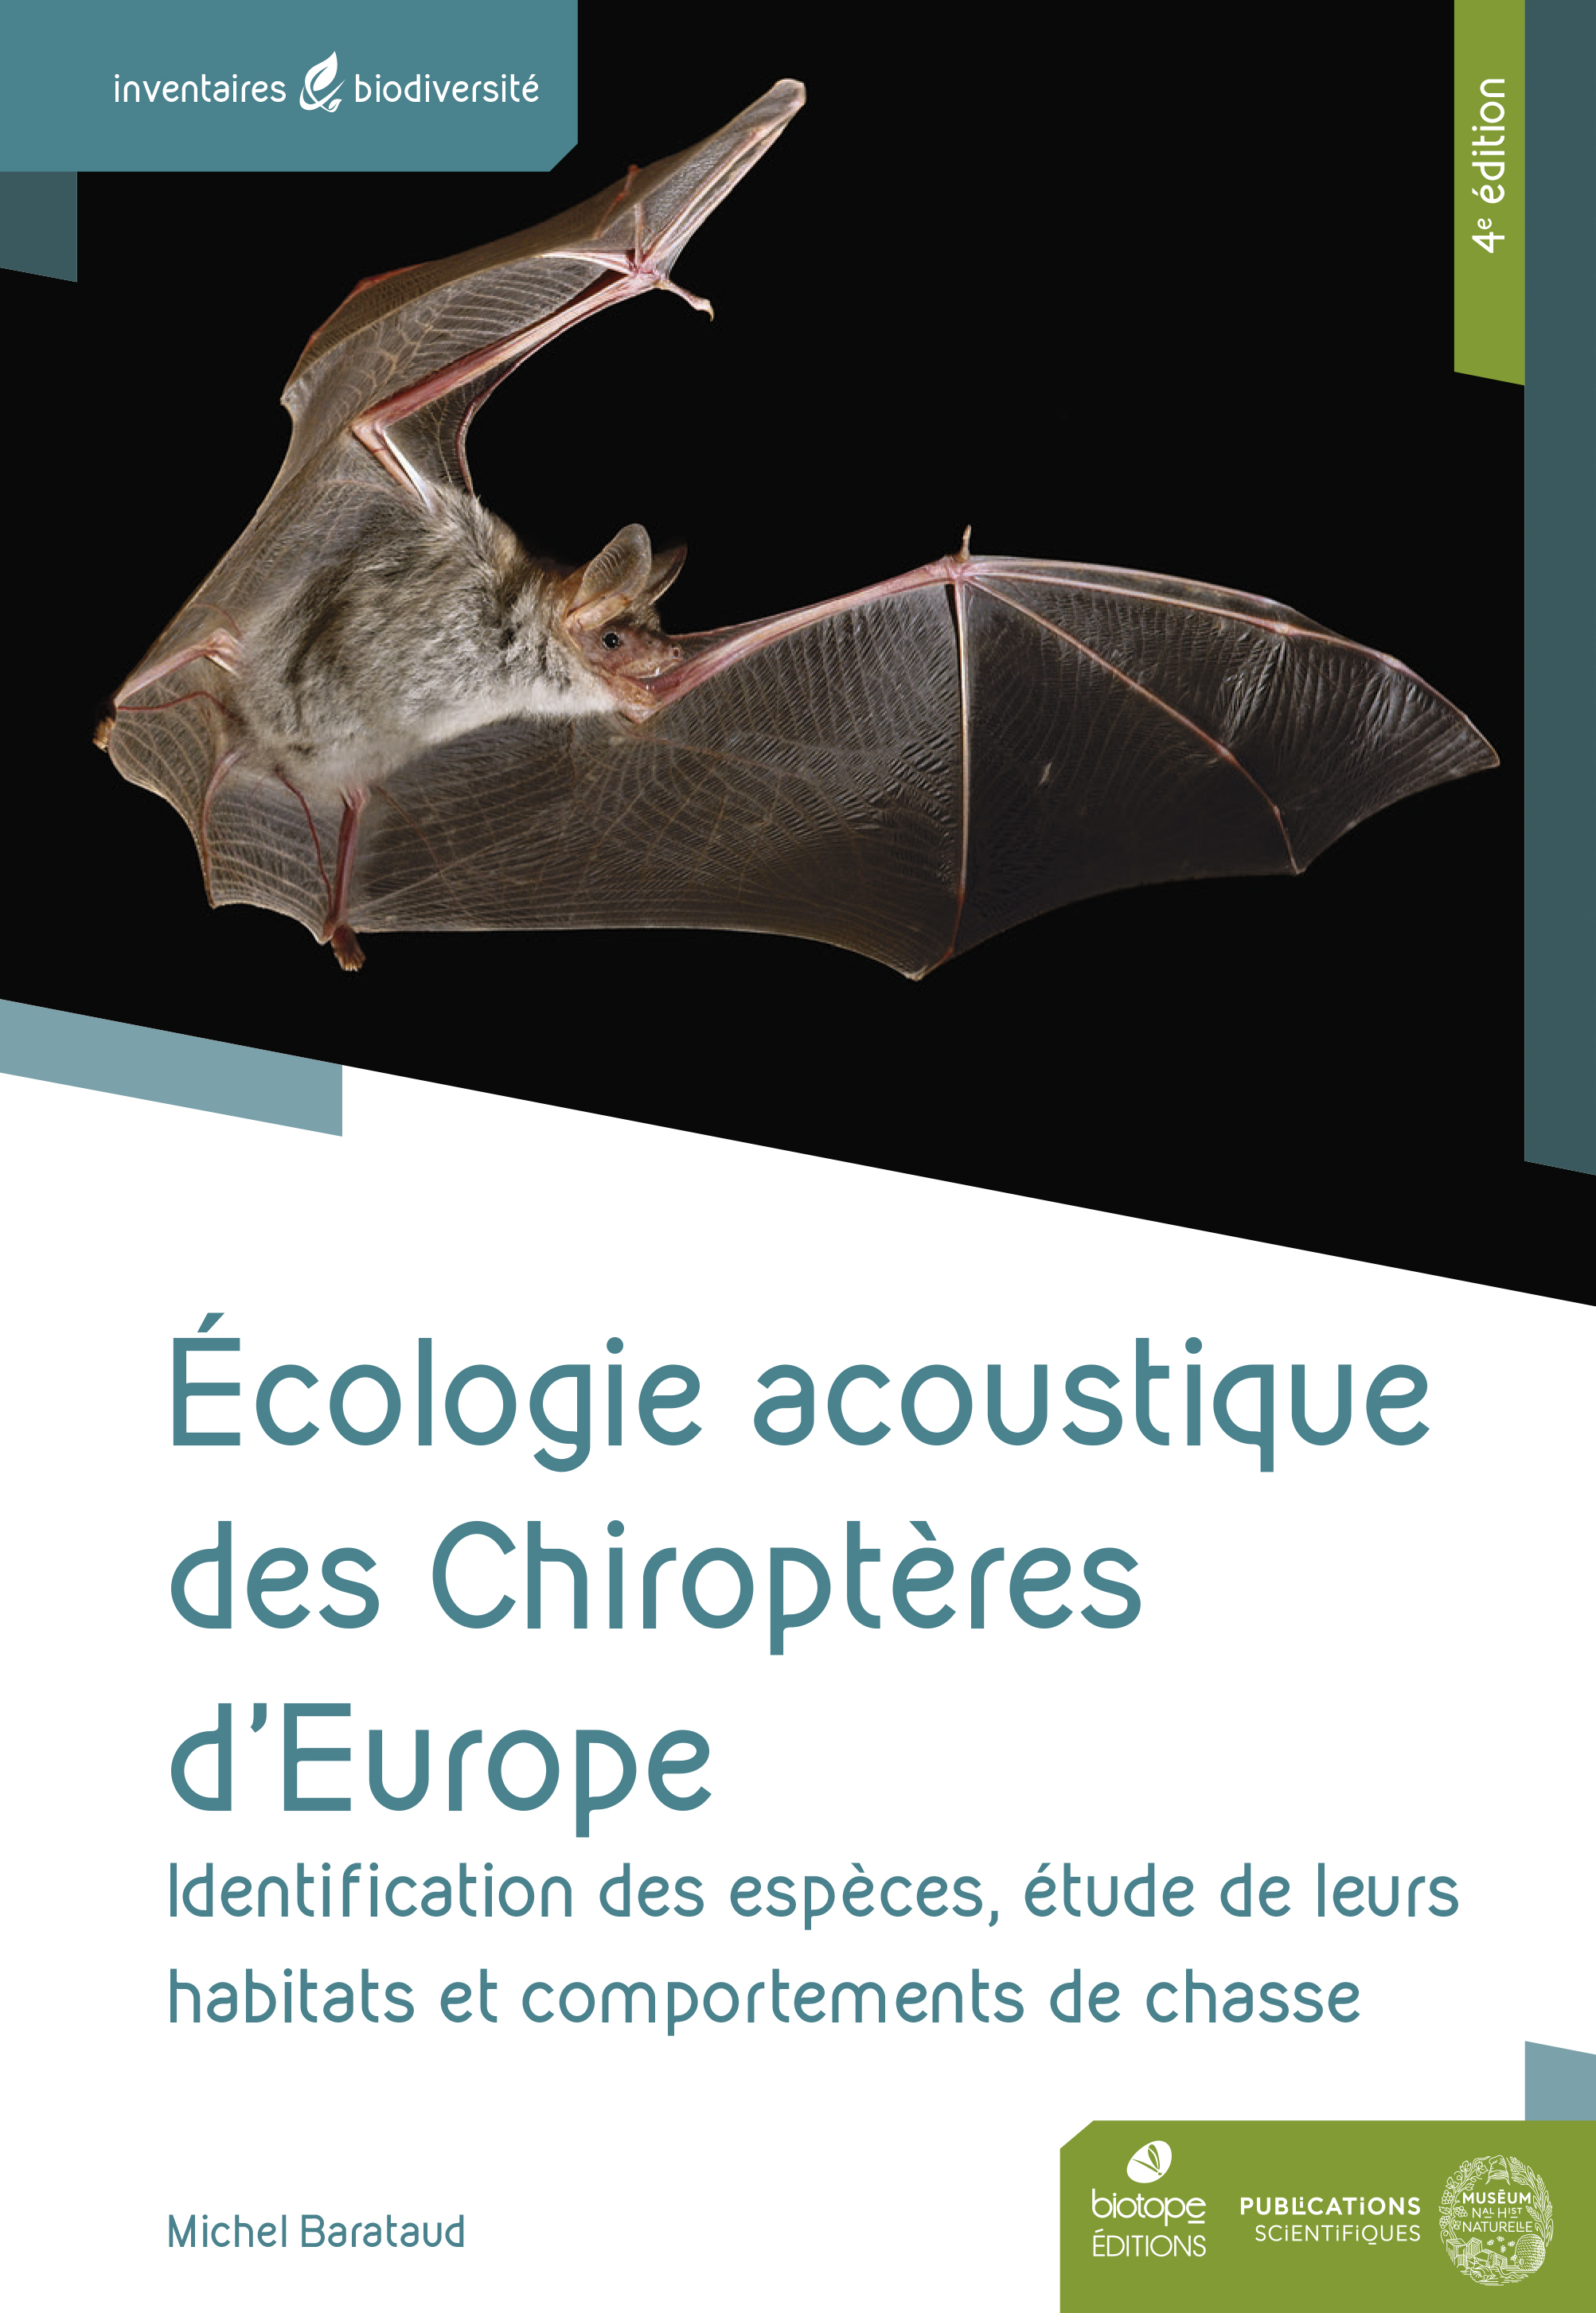 Les éditions Biotope